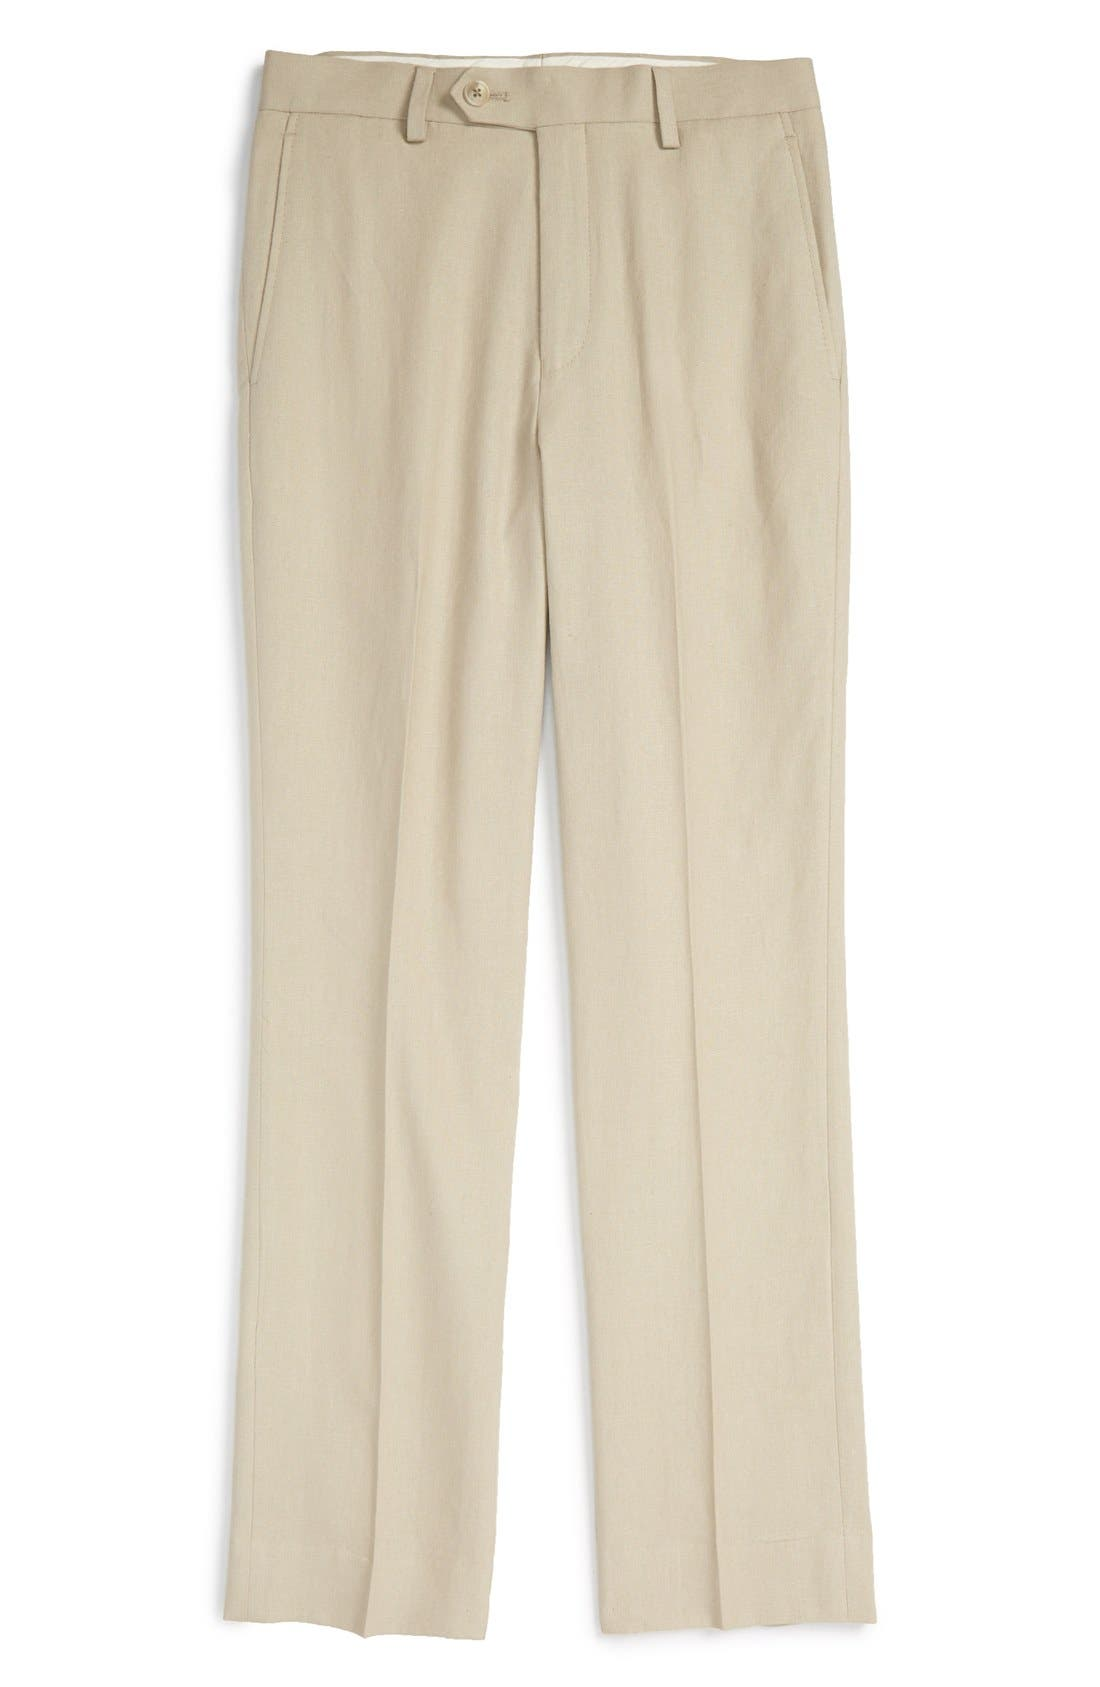 'Kirton' Flat Front Linen Blend Trousers,                         Main,                         color, 284